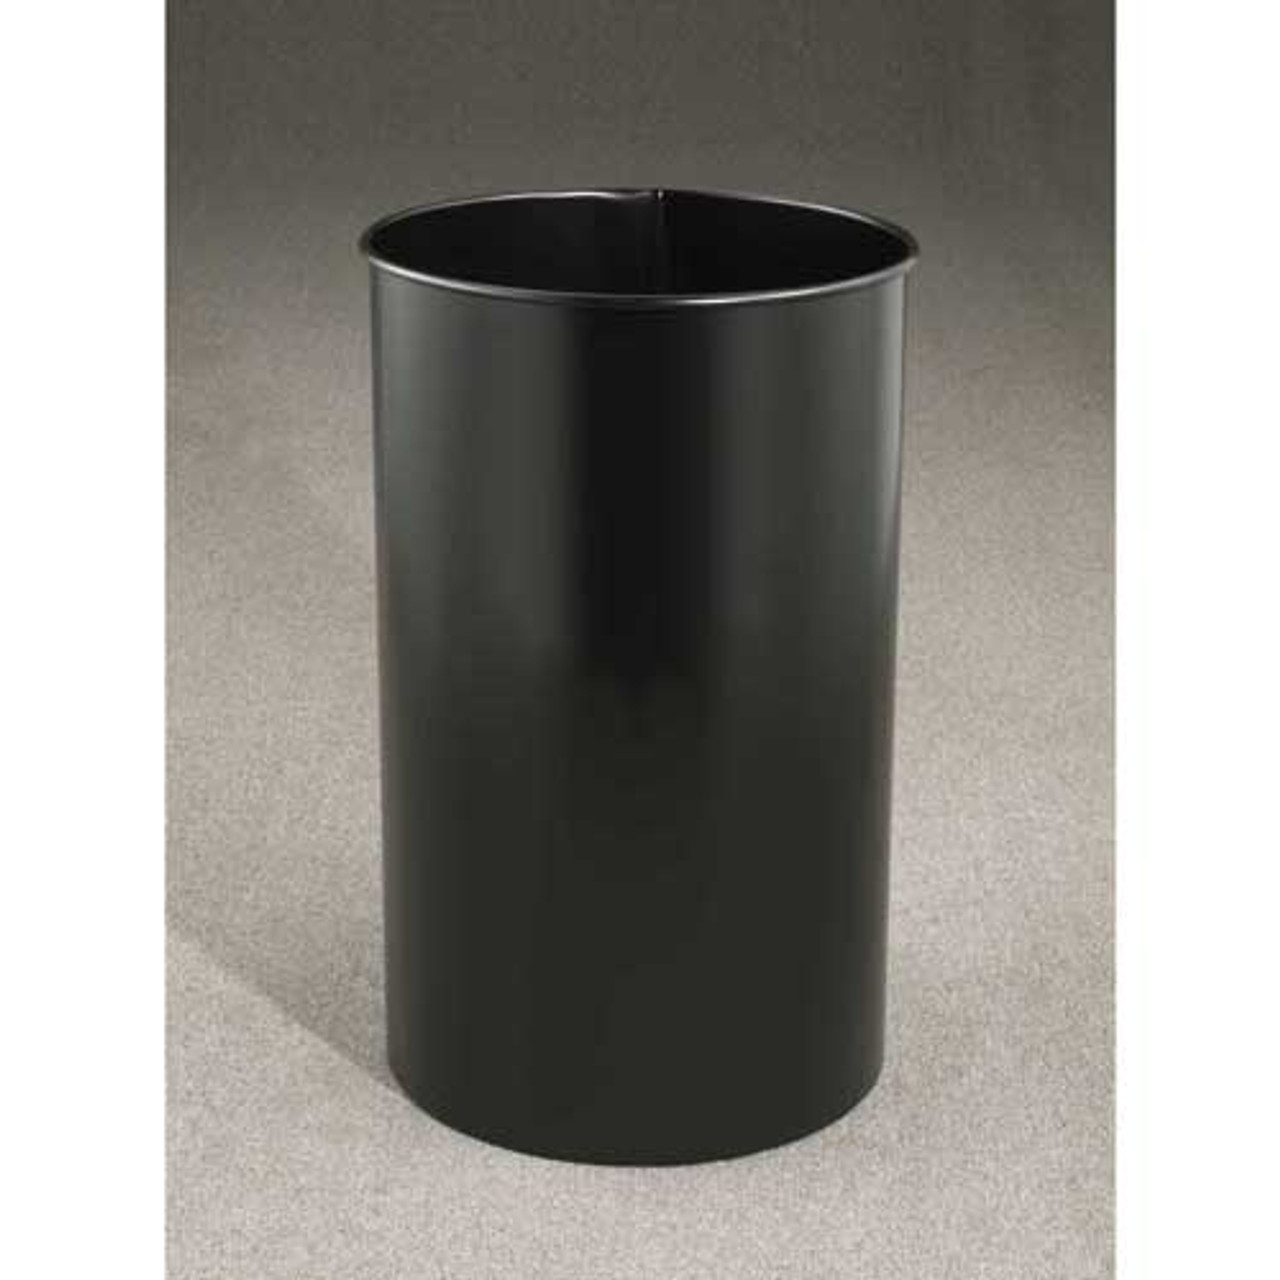 39 Gallon 20 x 29 Large Open Top Home Office Wastebasket 29 Designer Colors